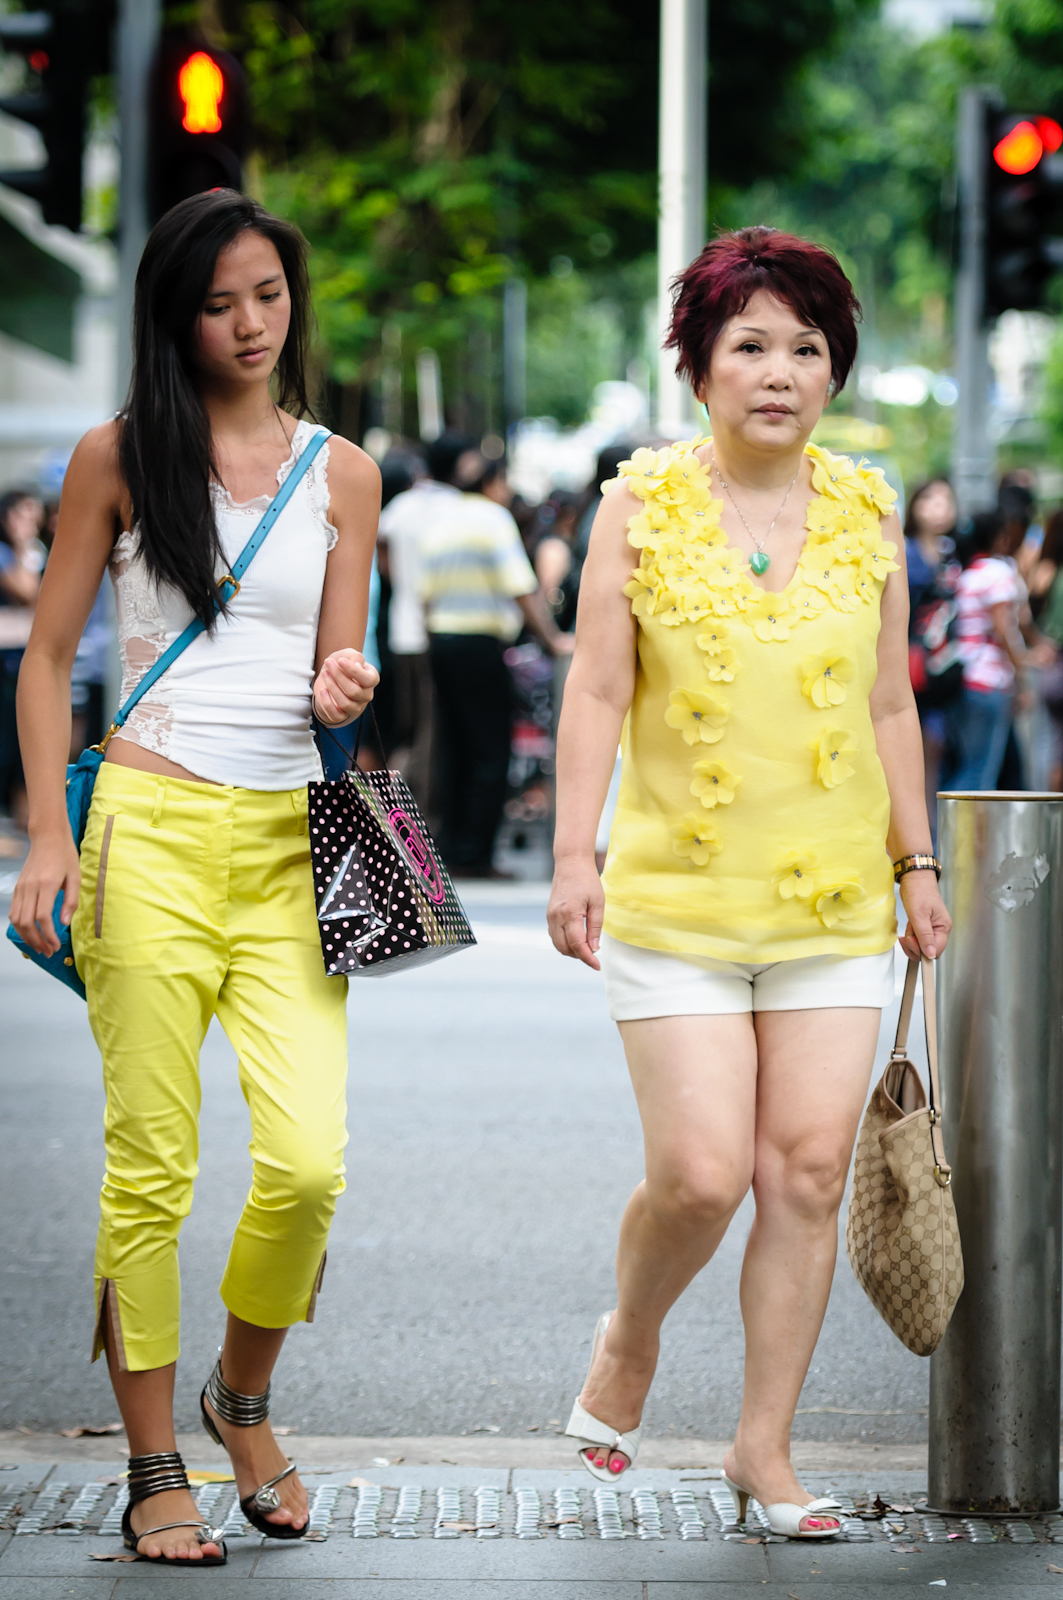 Street photography - Mother and daughter wearing yellow and white